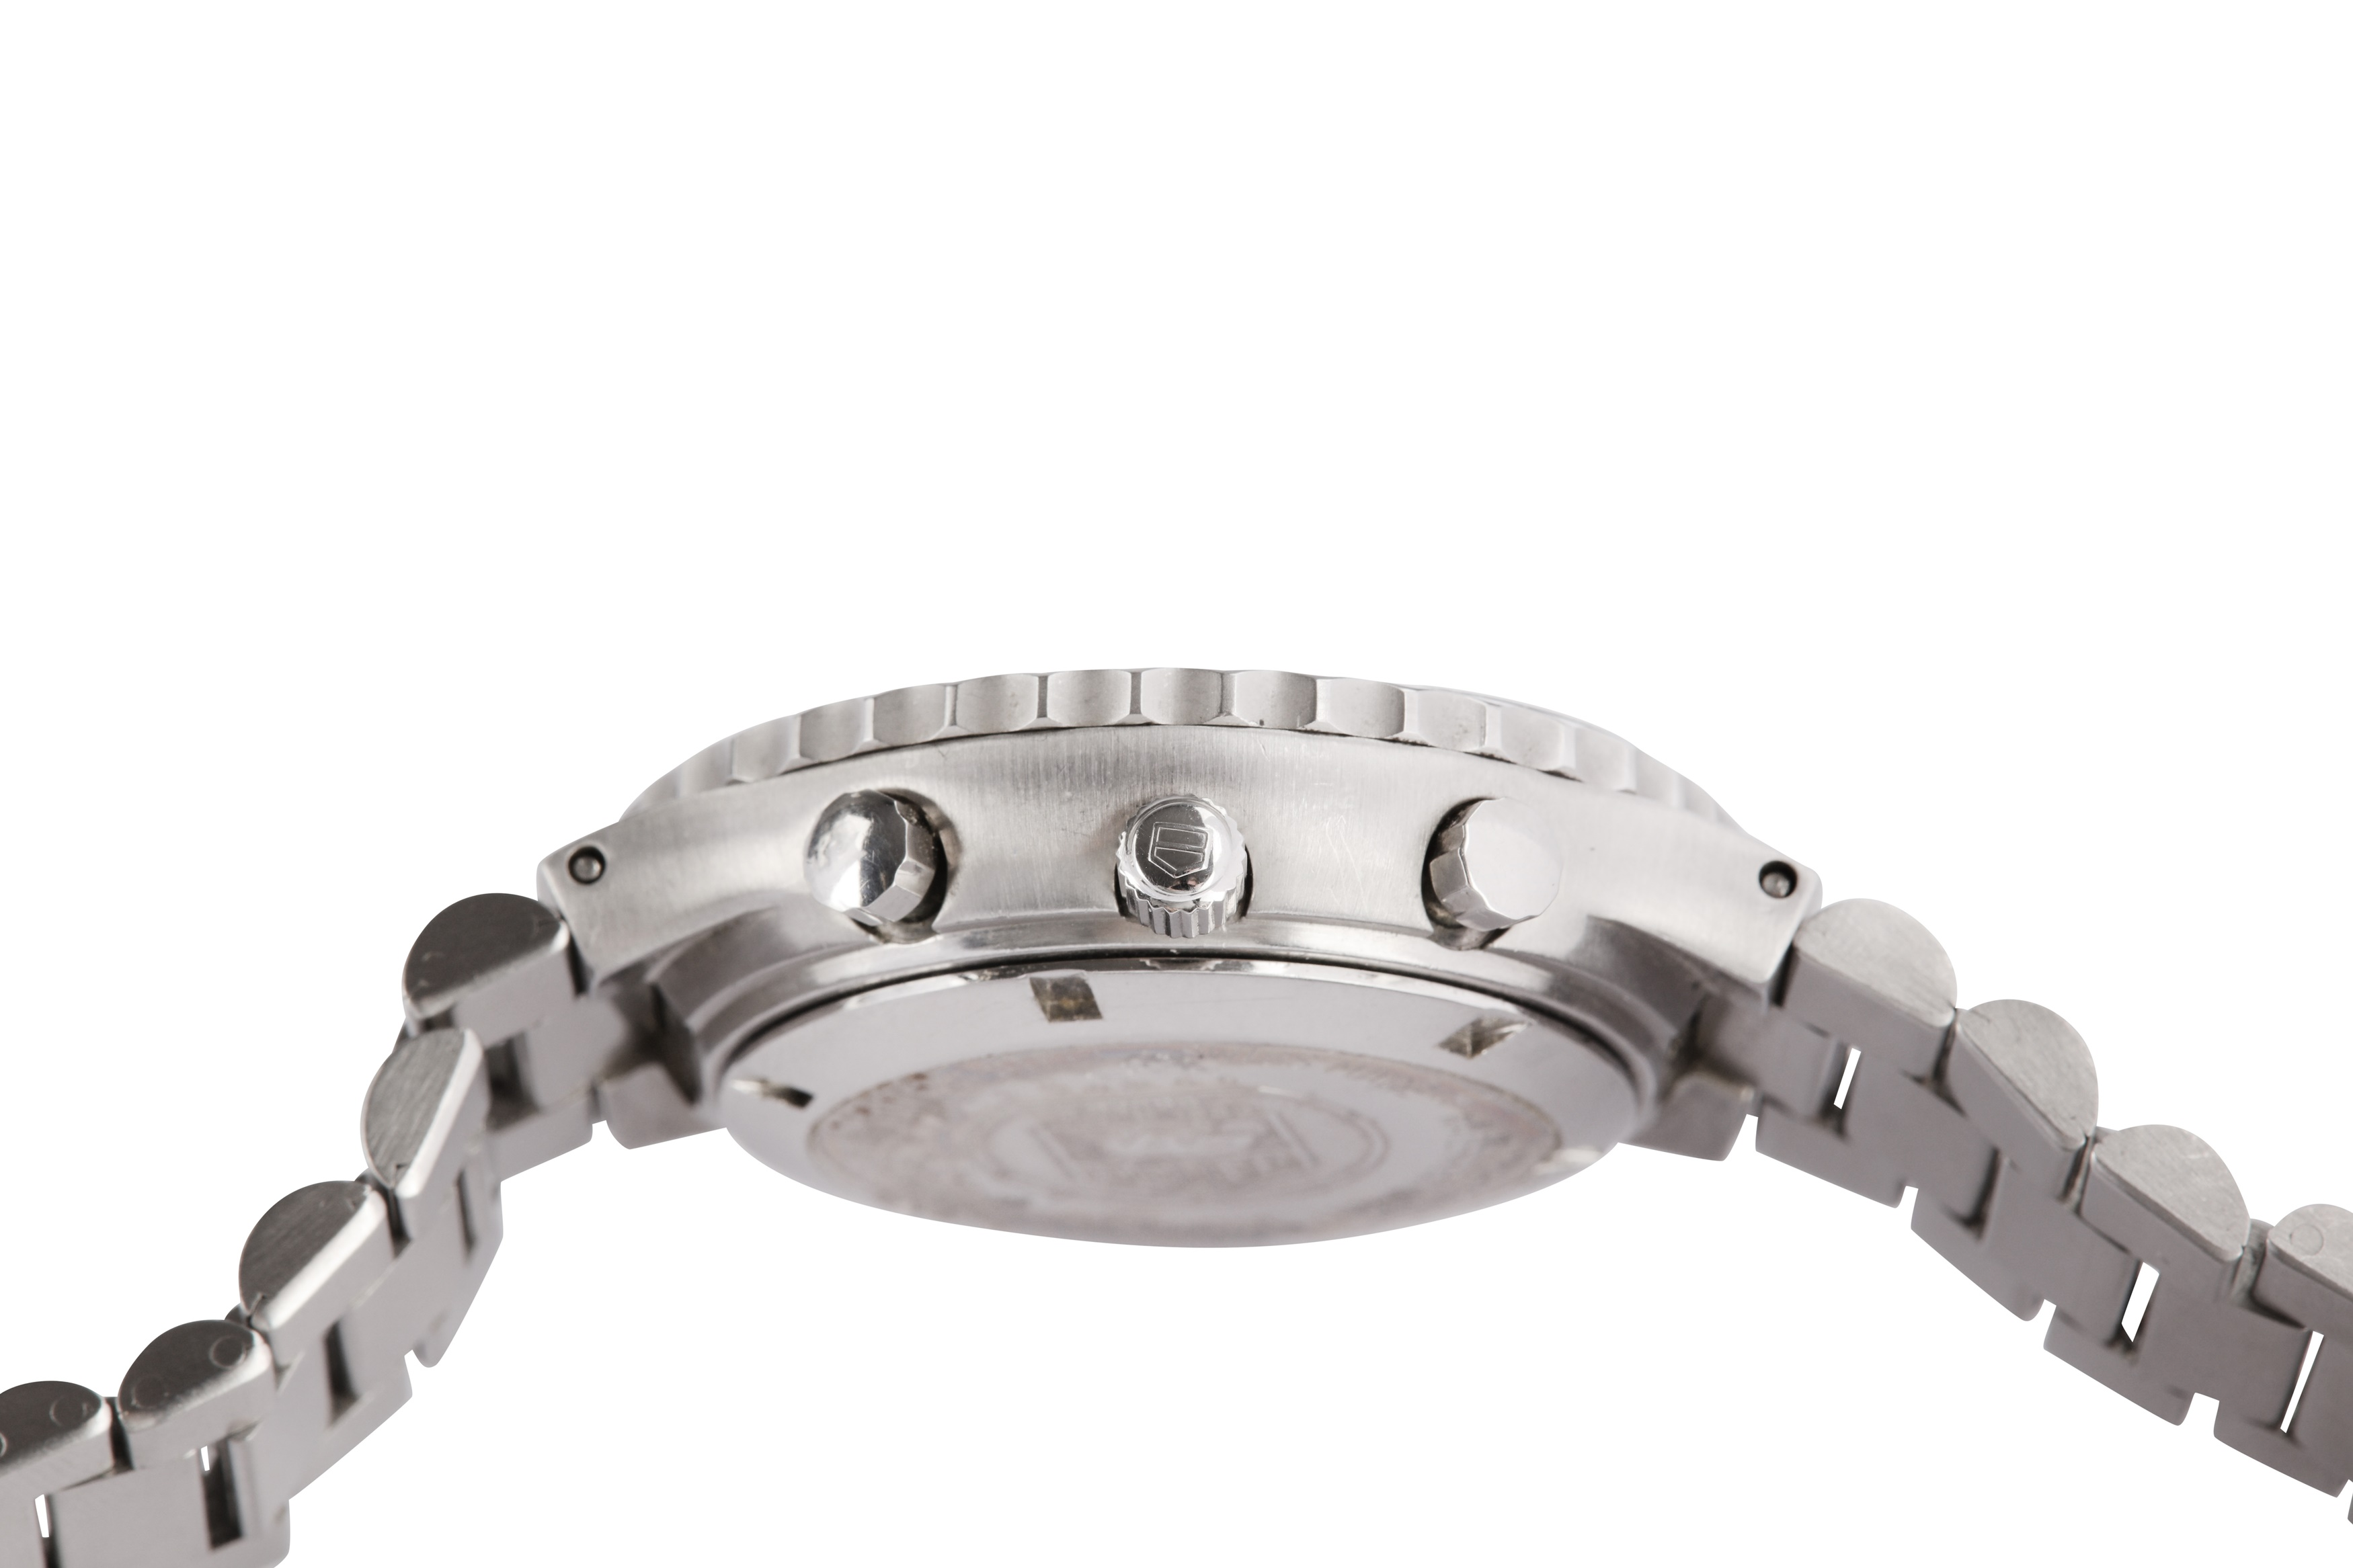 TAG HEUER. - Image 4 of 5